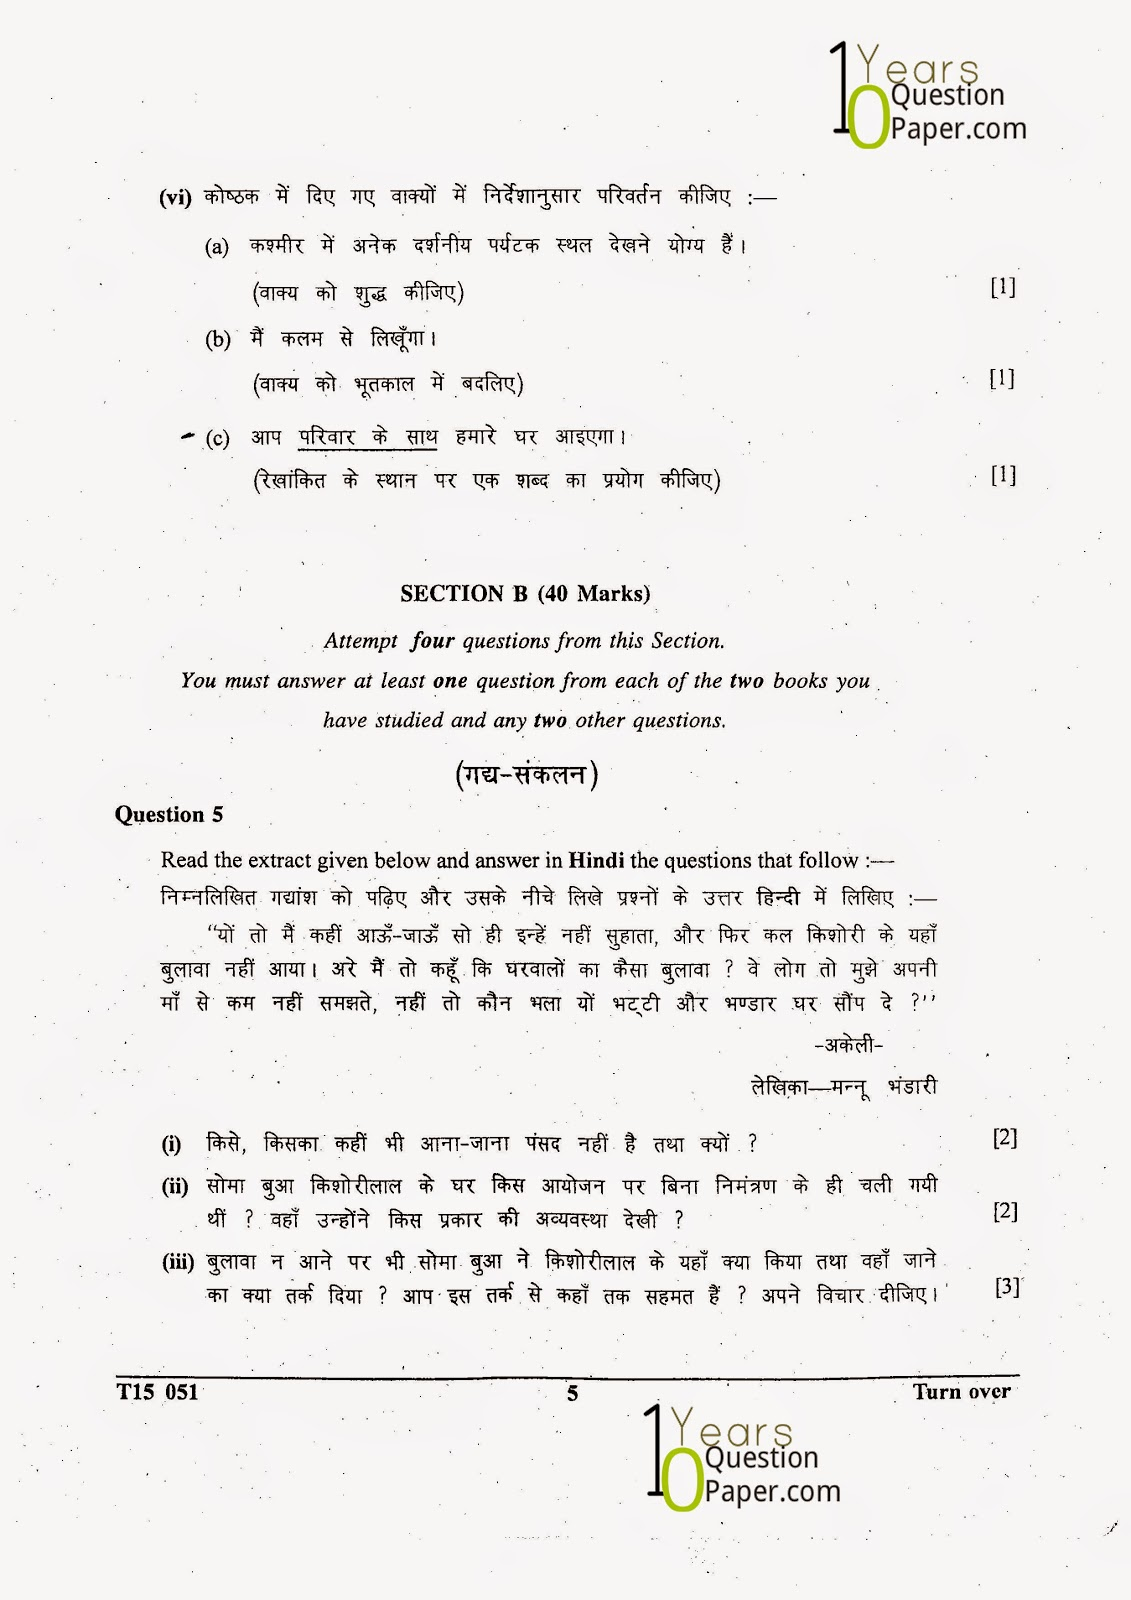 Icse 2015 hindi class x board question paper 10 years question icse 2015 class 10th hindi question paper thecheapjerseys Gallery